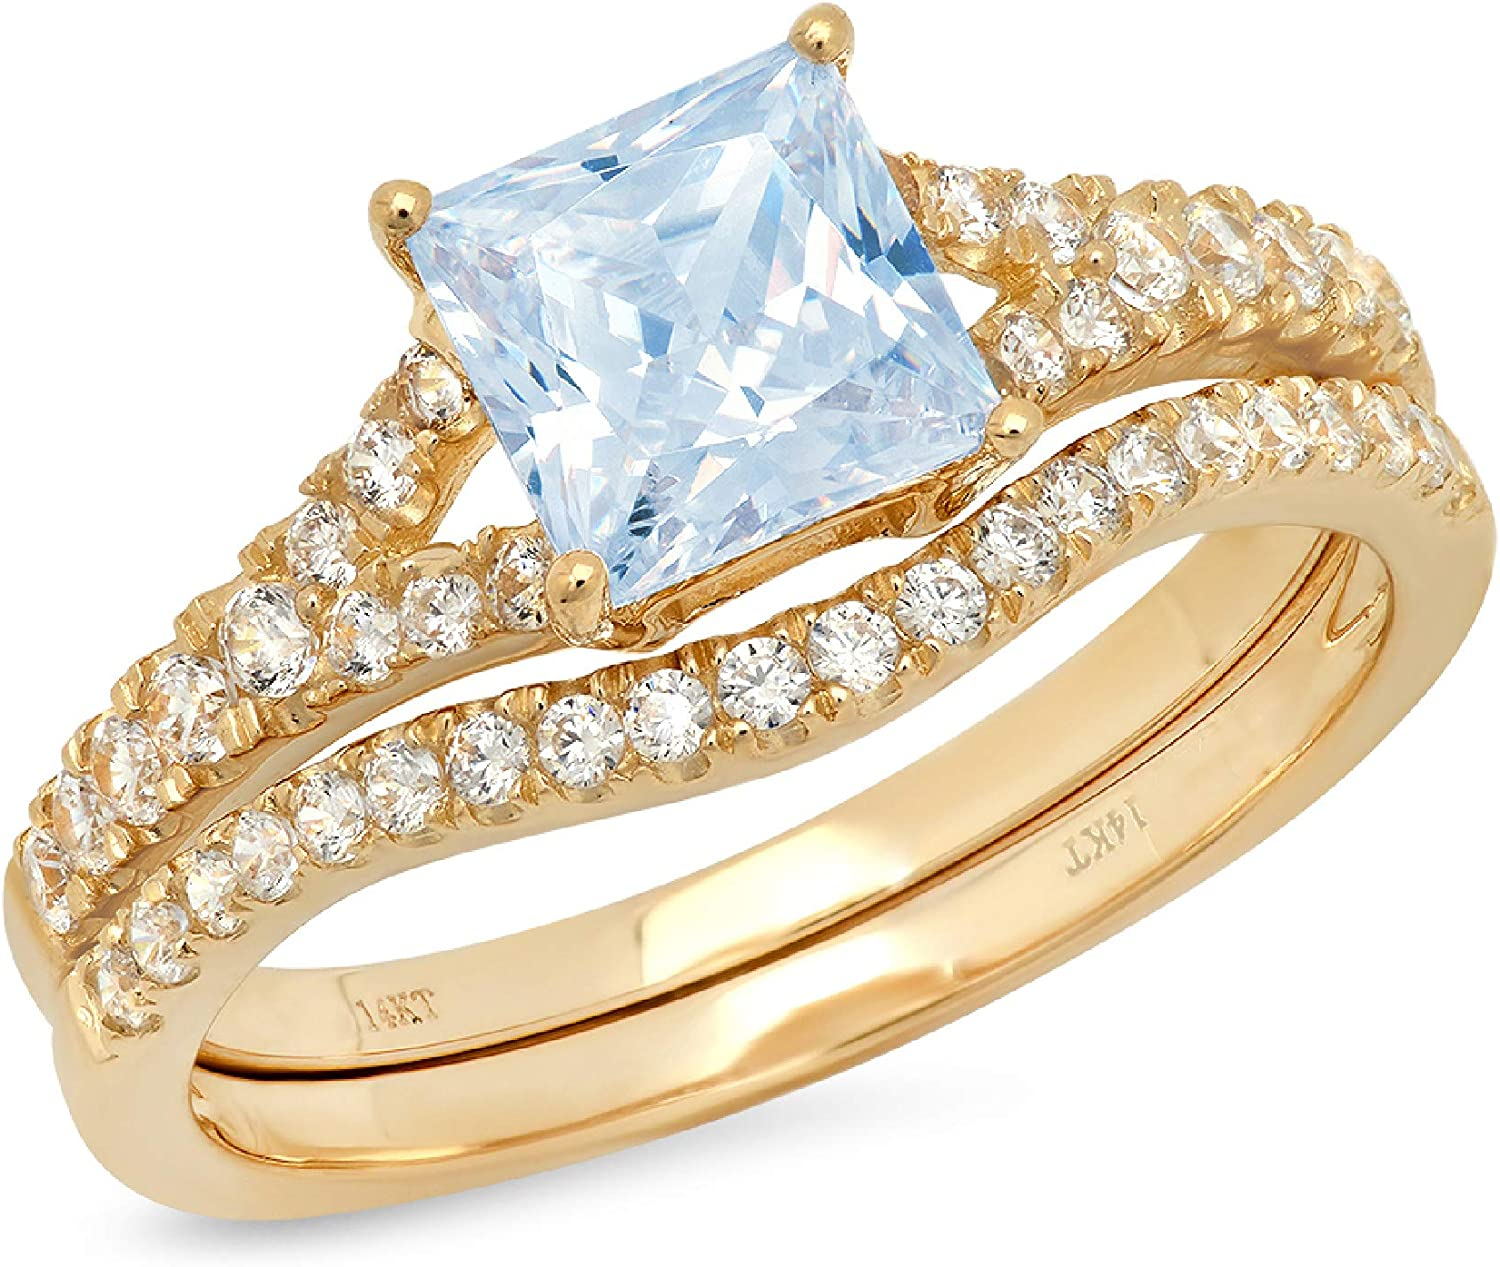 1.95ct Princess Cut Pave Solitaire with Accent VVS1 Ideal Natural Sky Blue Topaz Engagement Promise Designer Anniversary Wedding Bridal Ring band set Curved 14k Yellow Gold